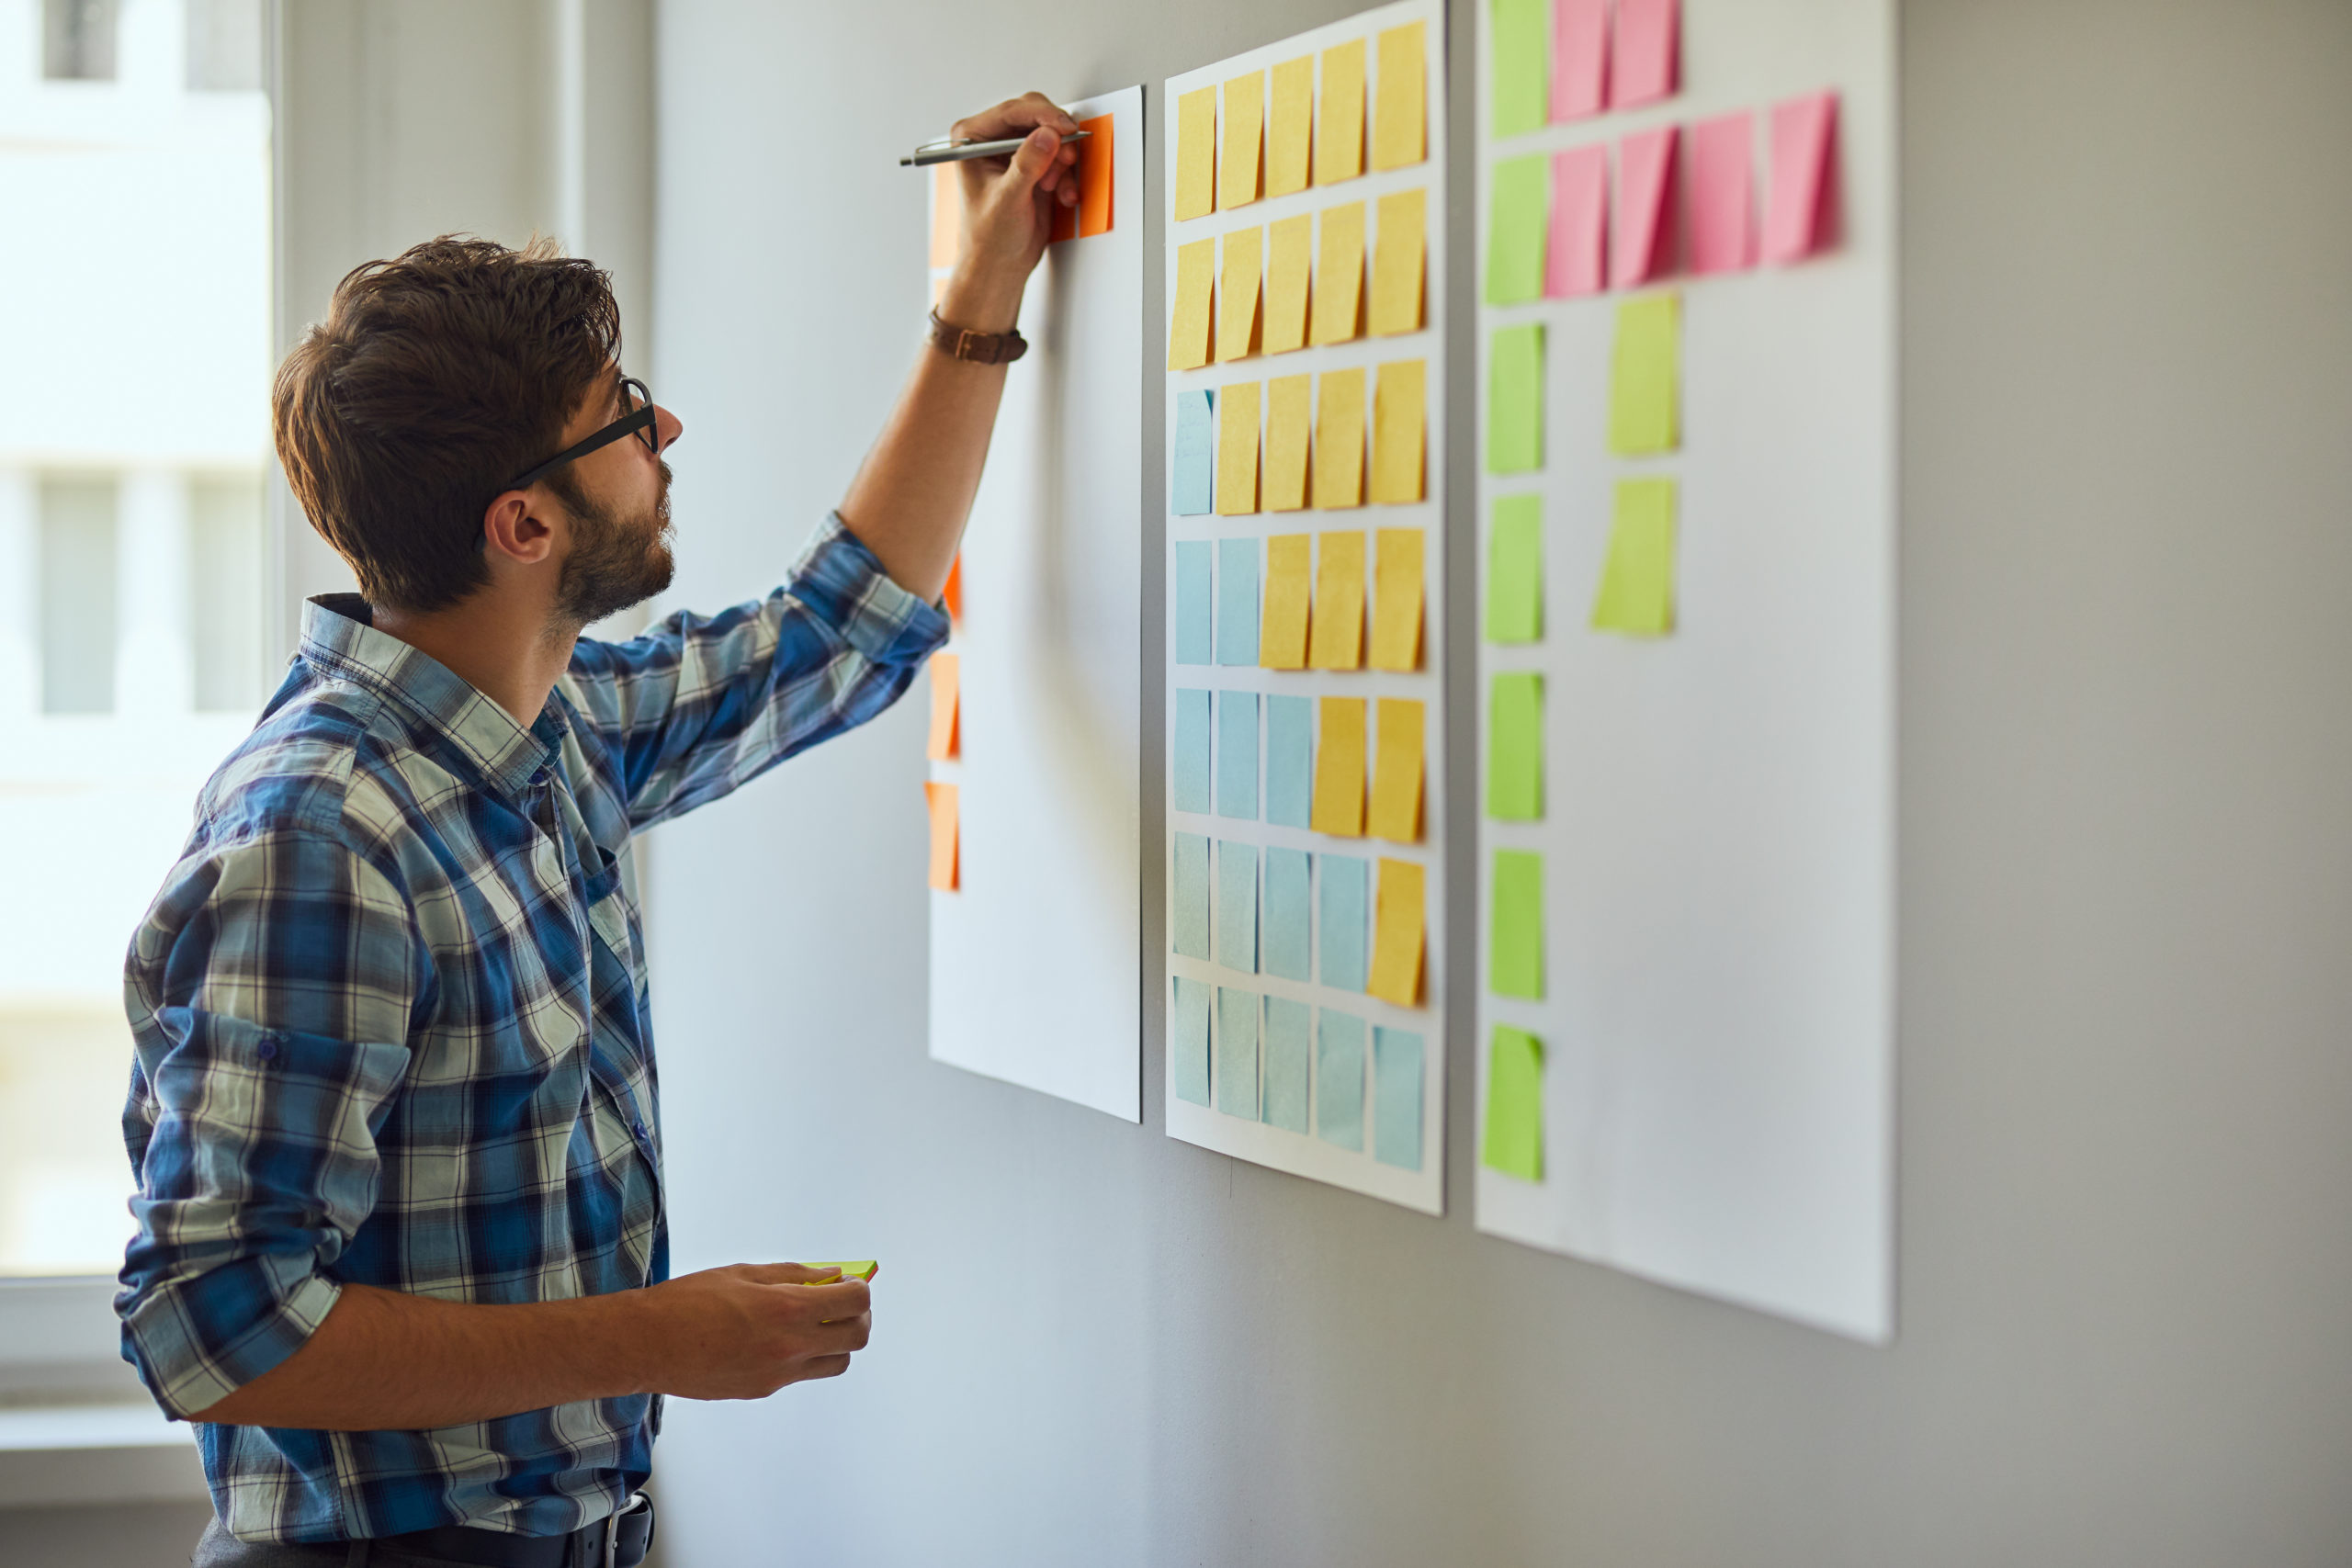 Coaching success and building an effective workplace culture